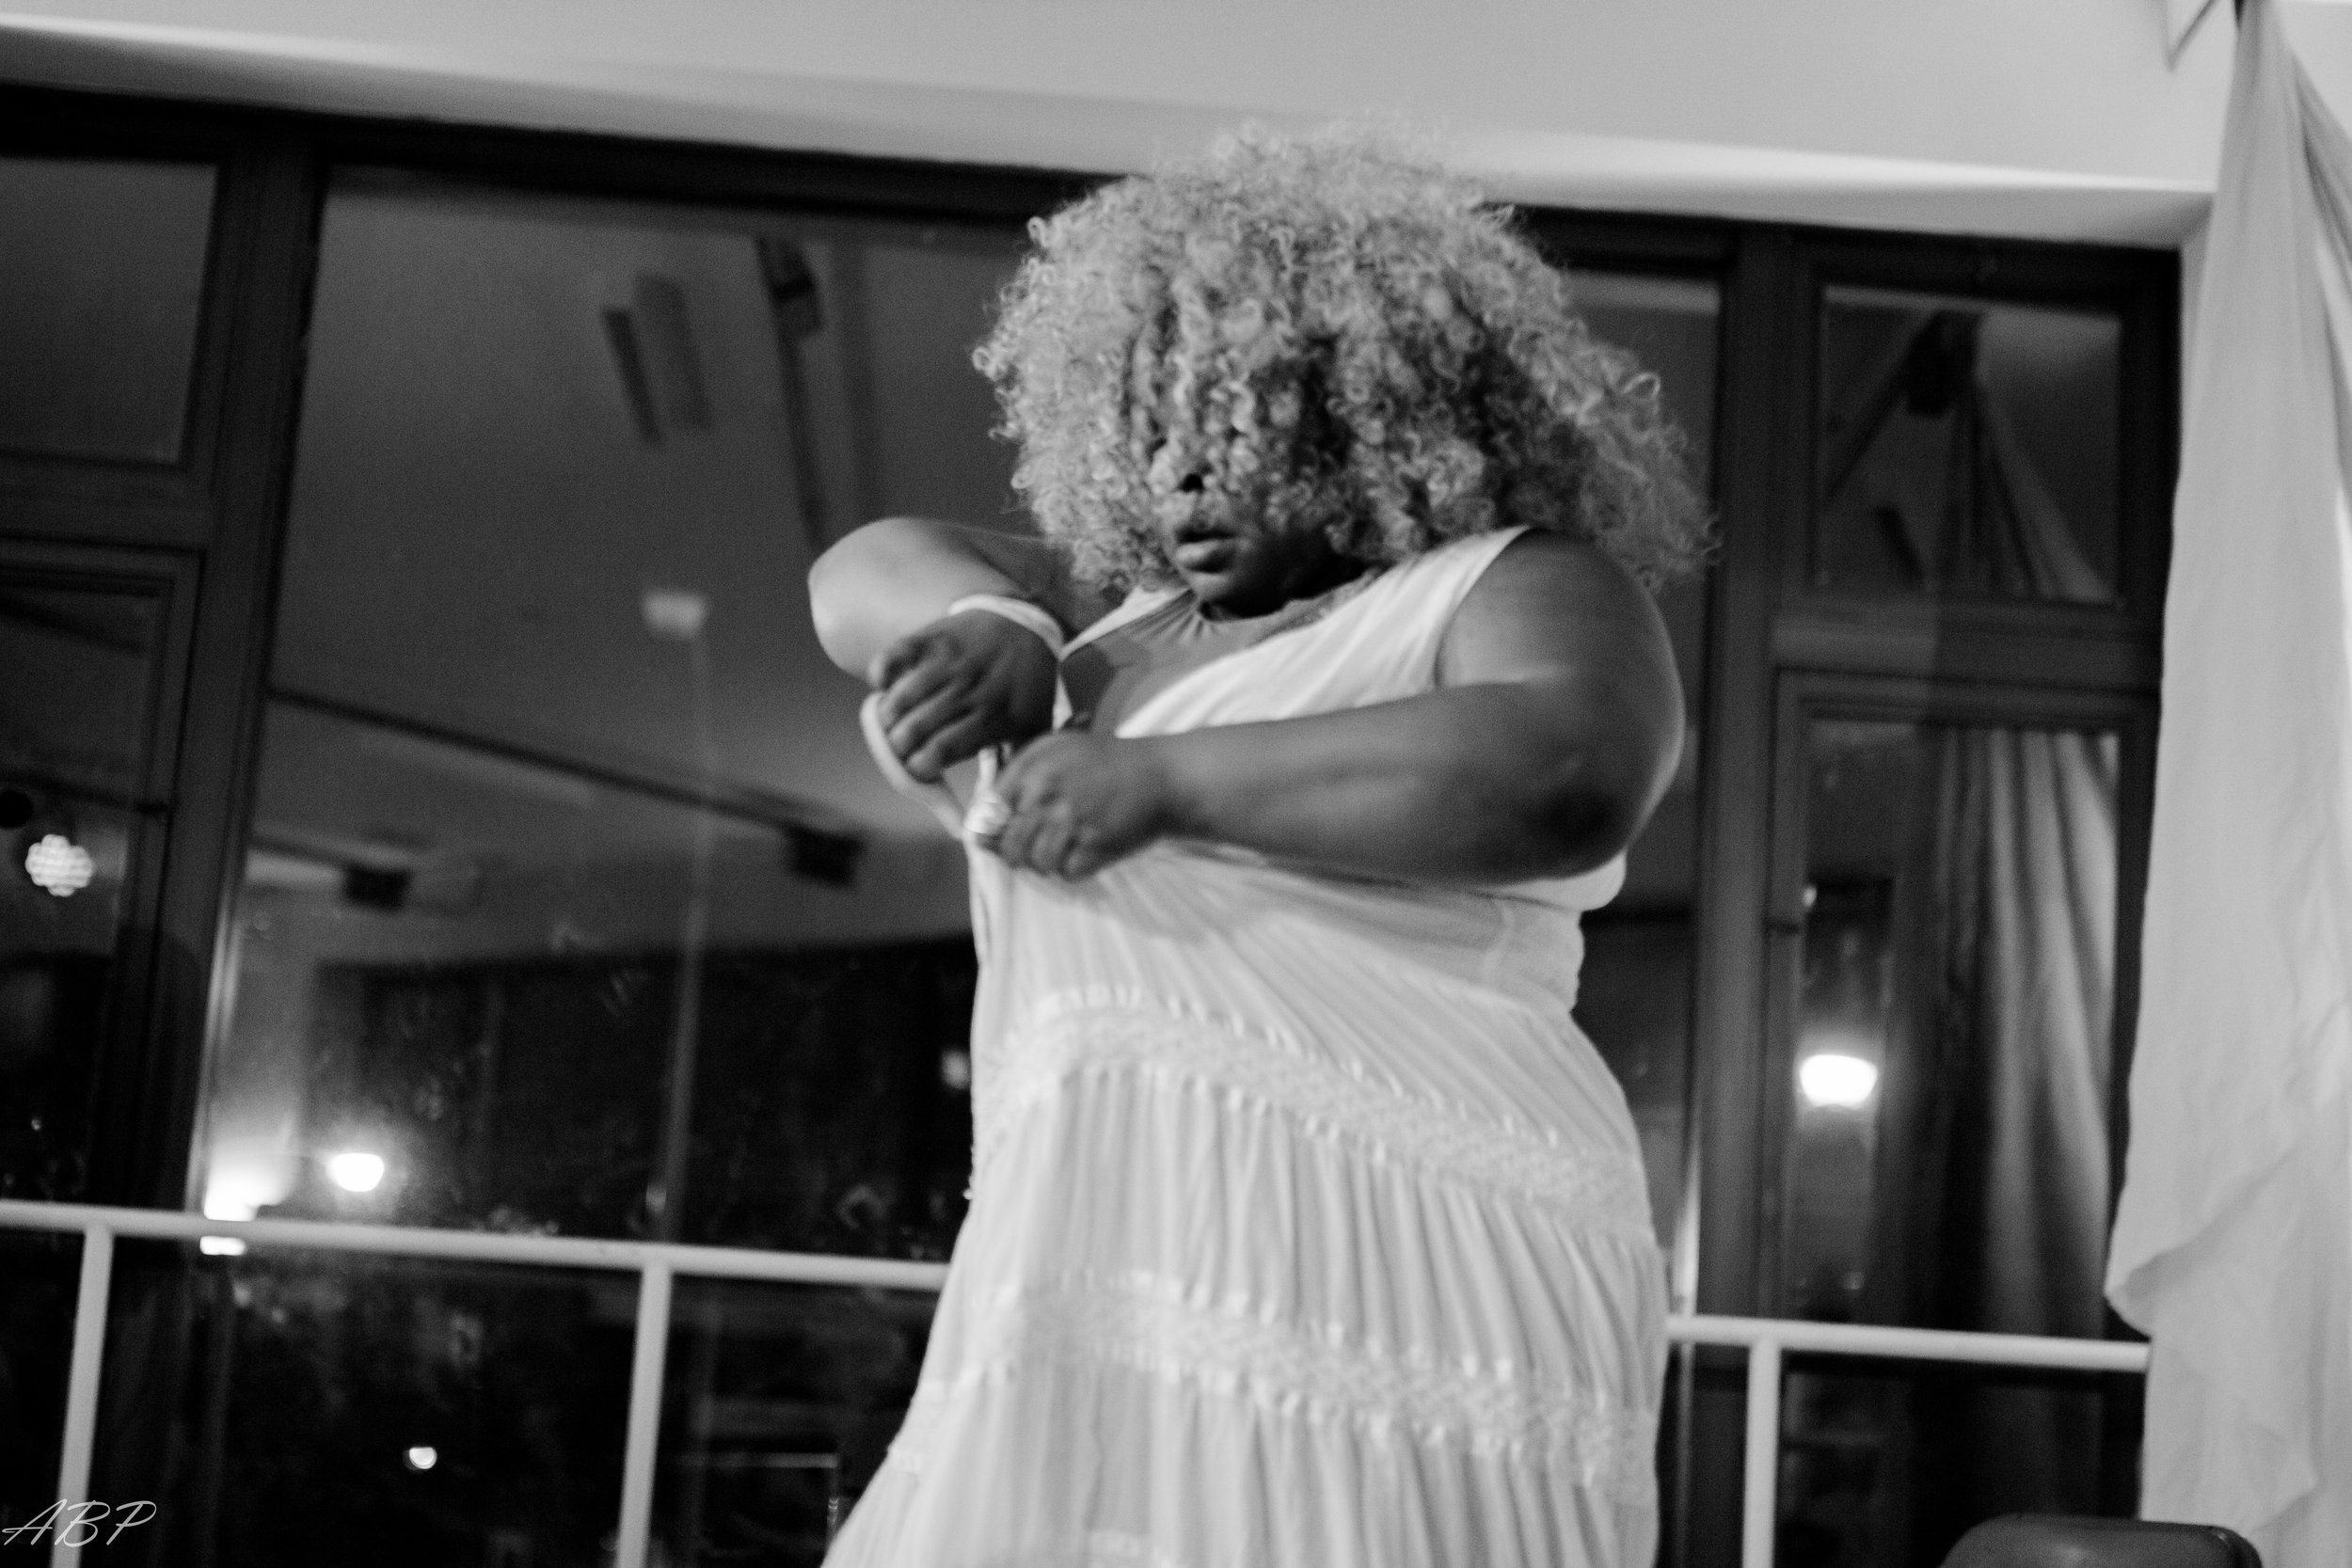 Ripping the dress during my performance at Black Sex Matters